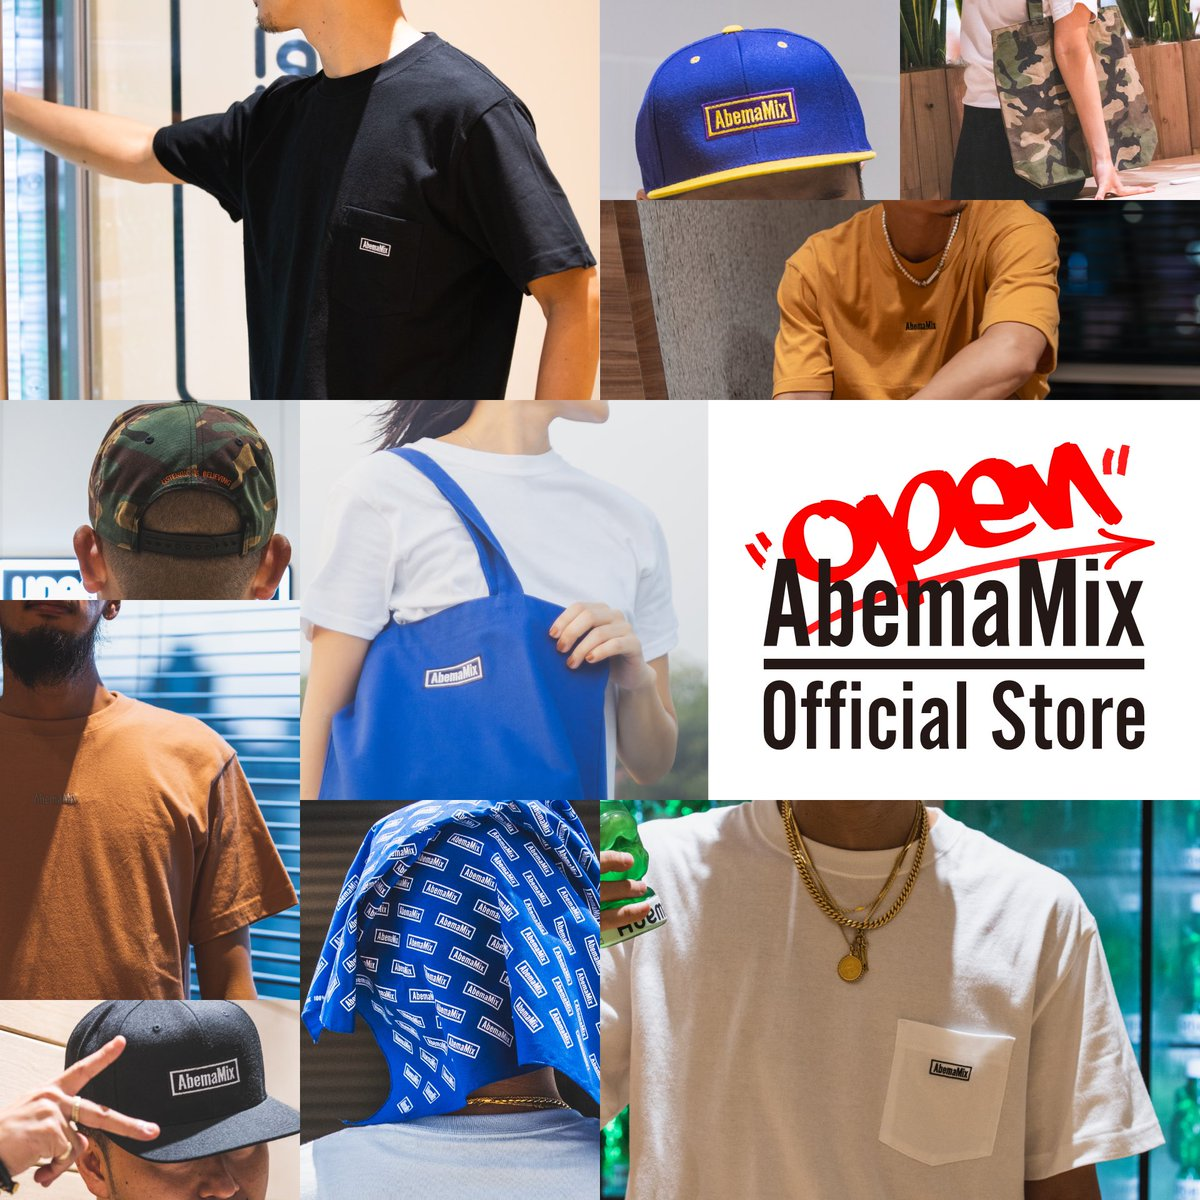 #AbemaMix @Abema_HIPHOP の Official StoreがOPENしました㊗️  是非チェックしてください😌  https://t.co/DOpWZJLE7P https://t.co/vfegMqpAGl